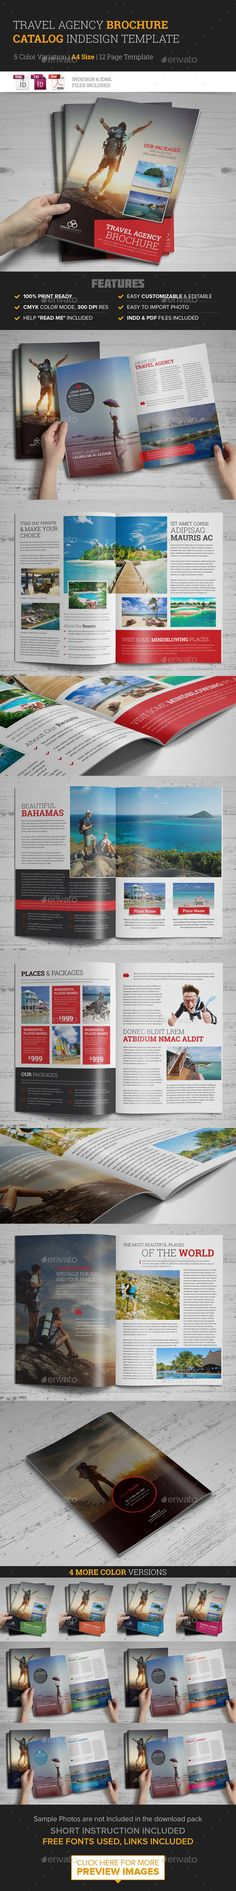 Travel Agency Brochure Catalog InDesign  2  InDesign Template • Download ➝ https://graphicriver.net/item/travel-agency-brochure-catalog-indesign-template-2/9548277?ref=pxcr